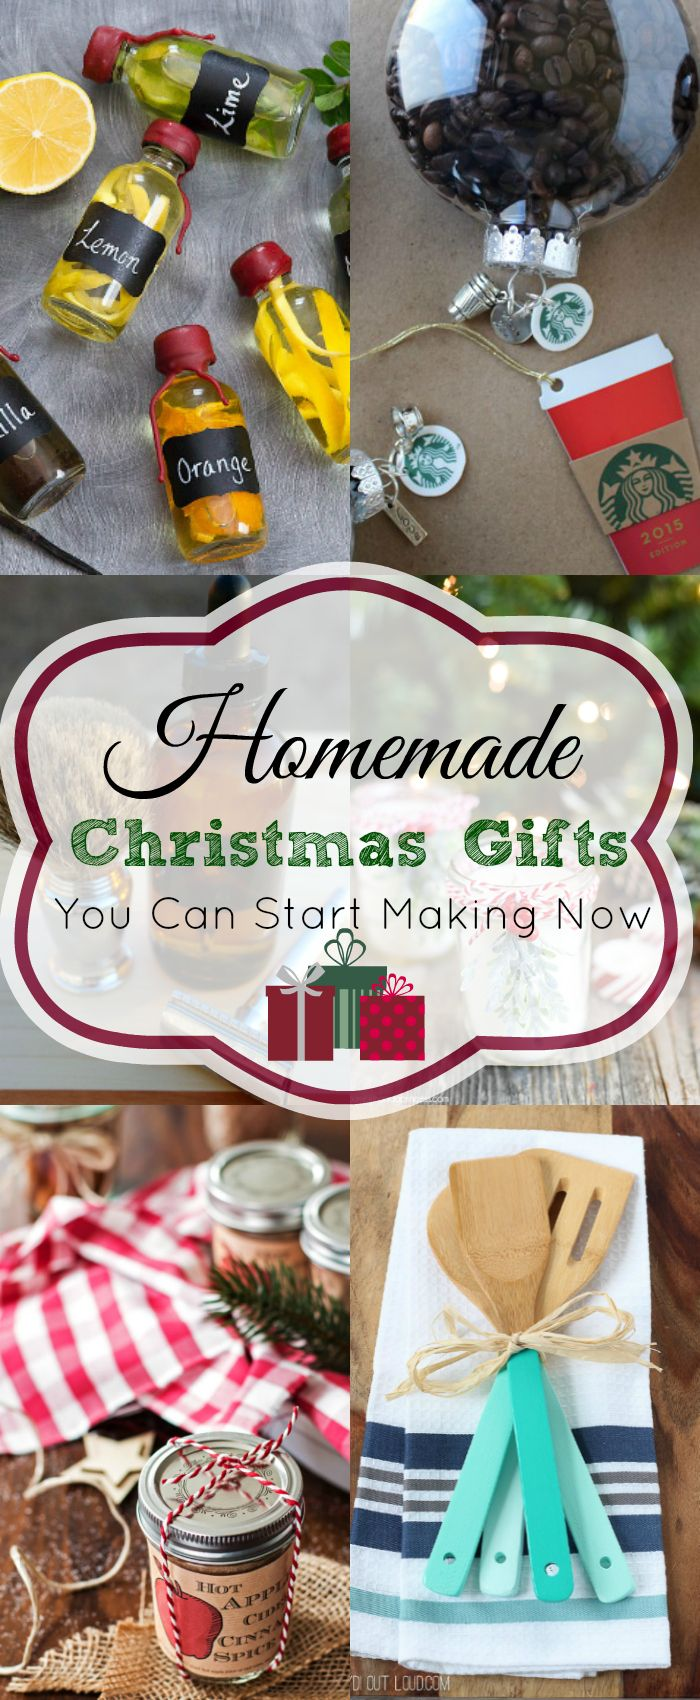 Awesome Fun Homemade Christmas Gift Ideas Part - 9: 25+ Homemade Christmas Gift Ideas. Food Gifts, Beauty Gifts, Diy Gifts,